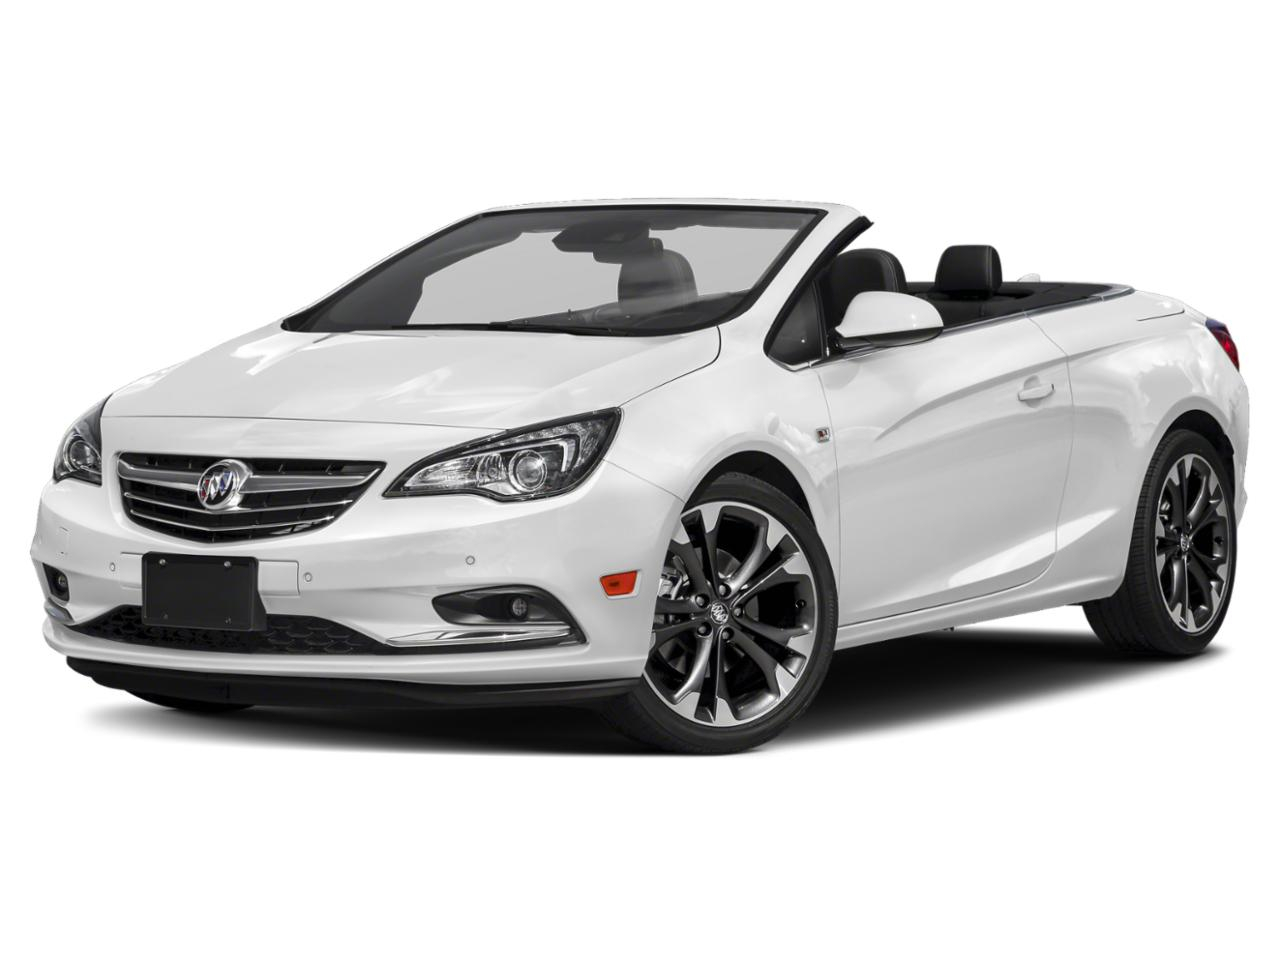 Learn About This 2019 Buick Cascada For Sale In Tacoma New 2021 Buick Cascada Pictures, Remote Start, Release